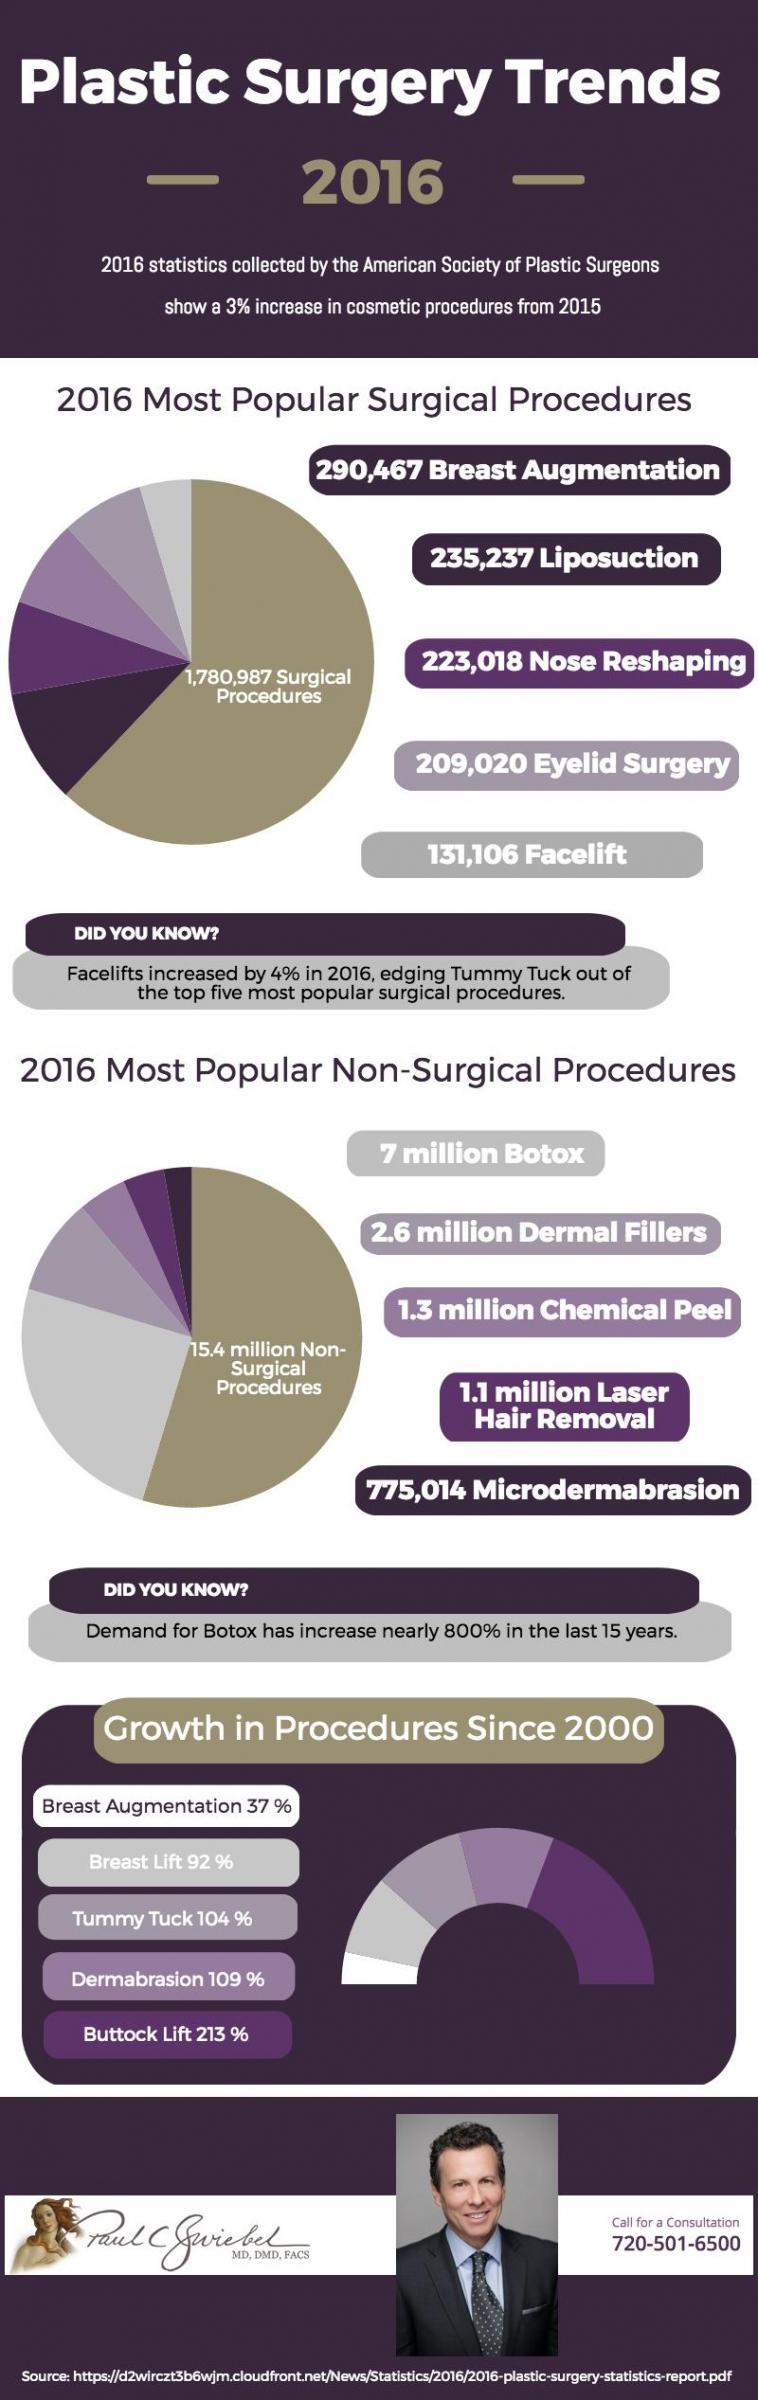 2016 Plastic Surgery Trends